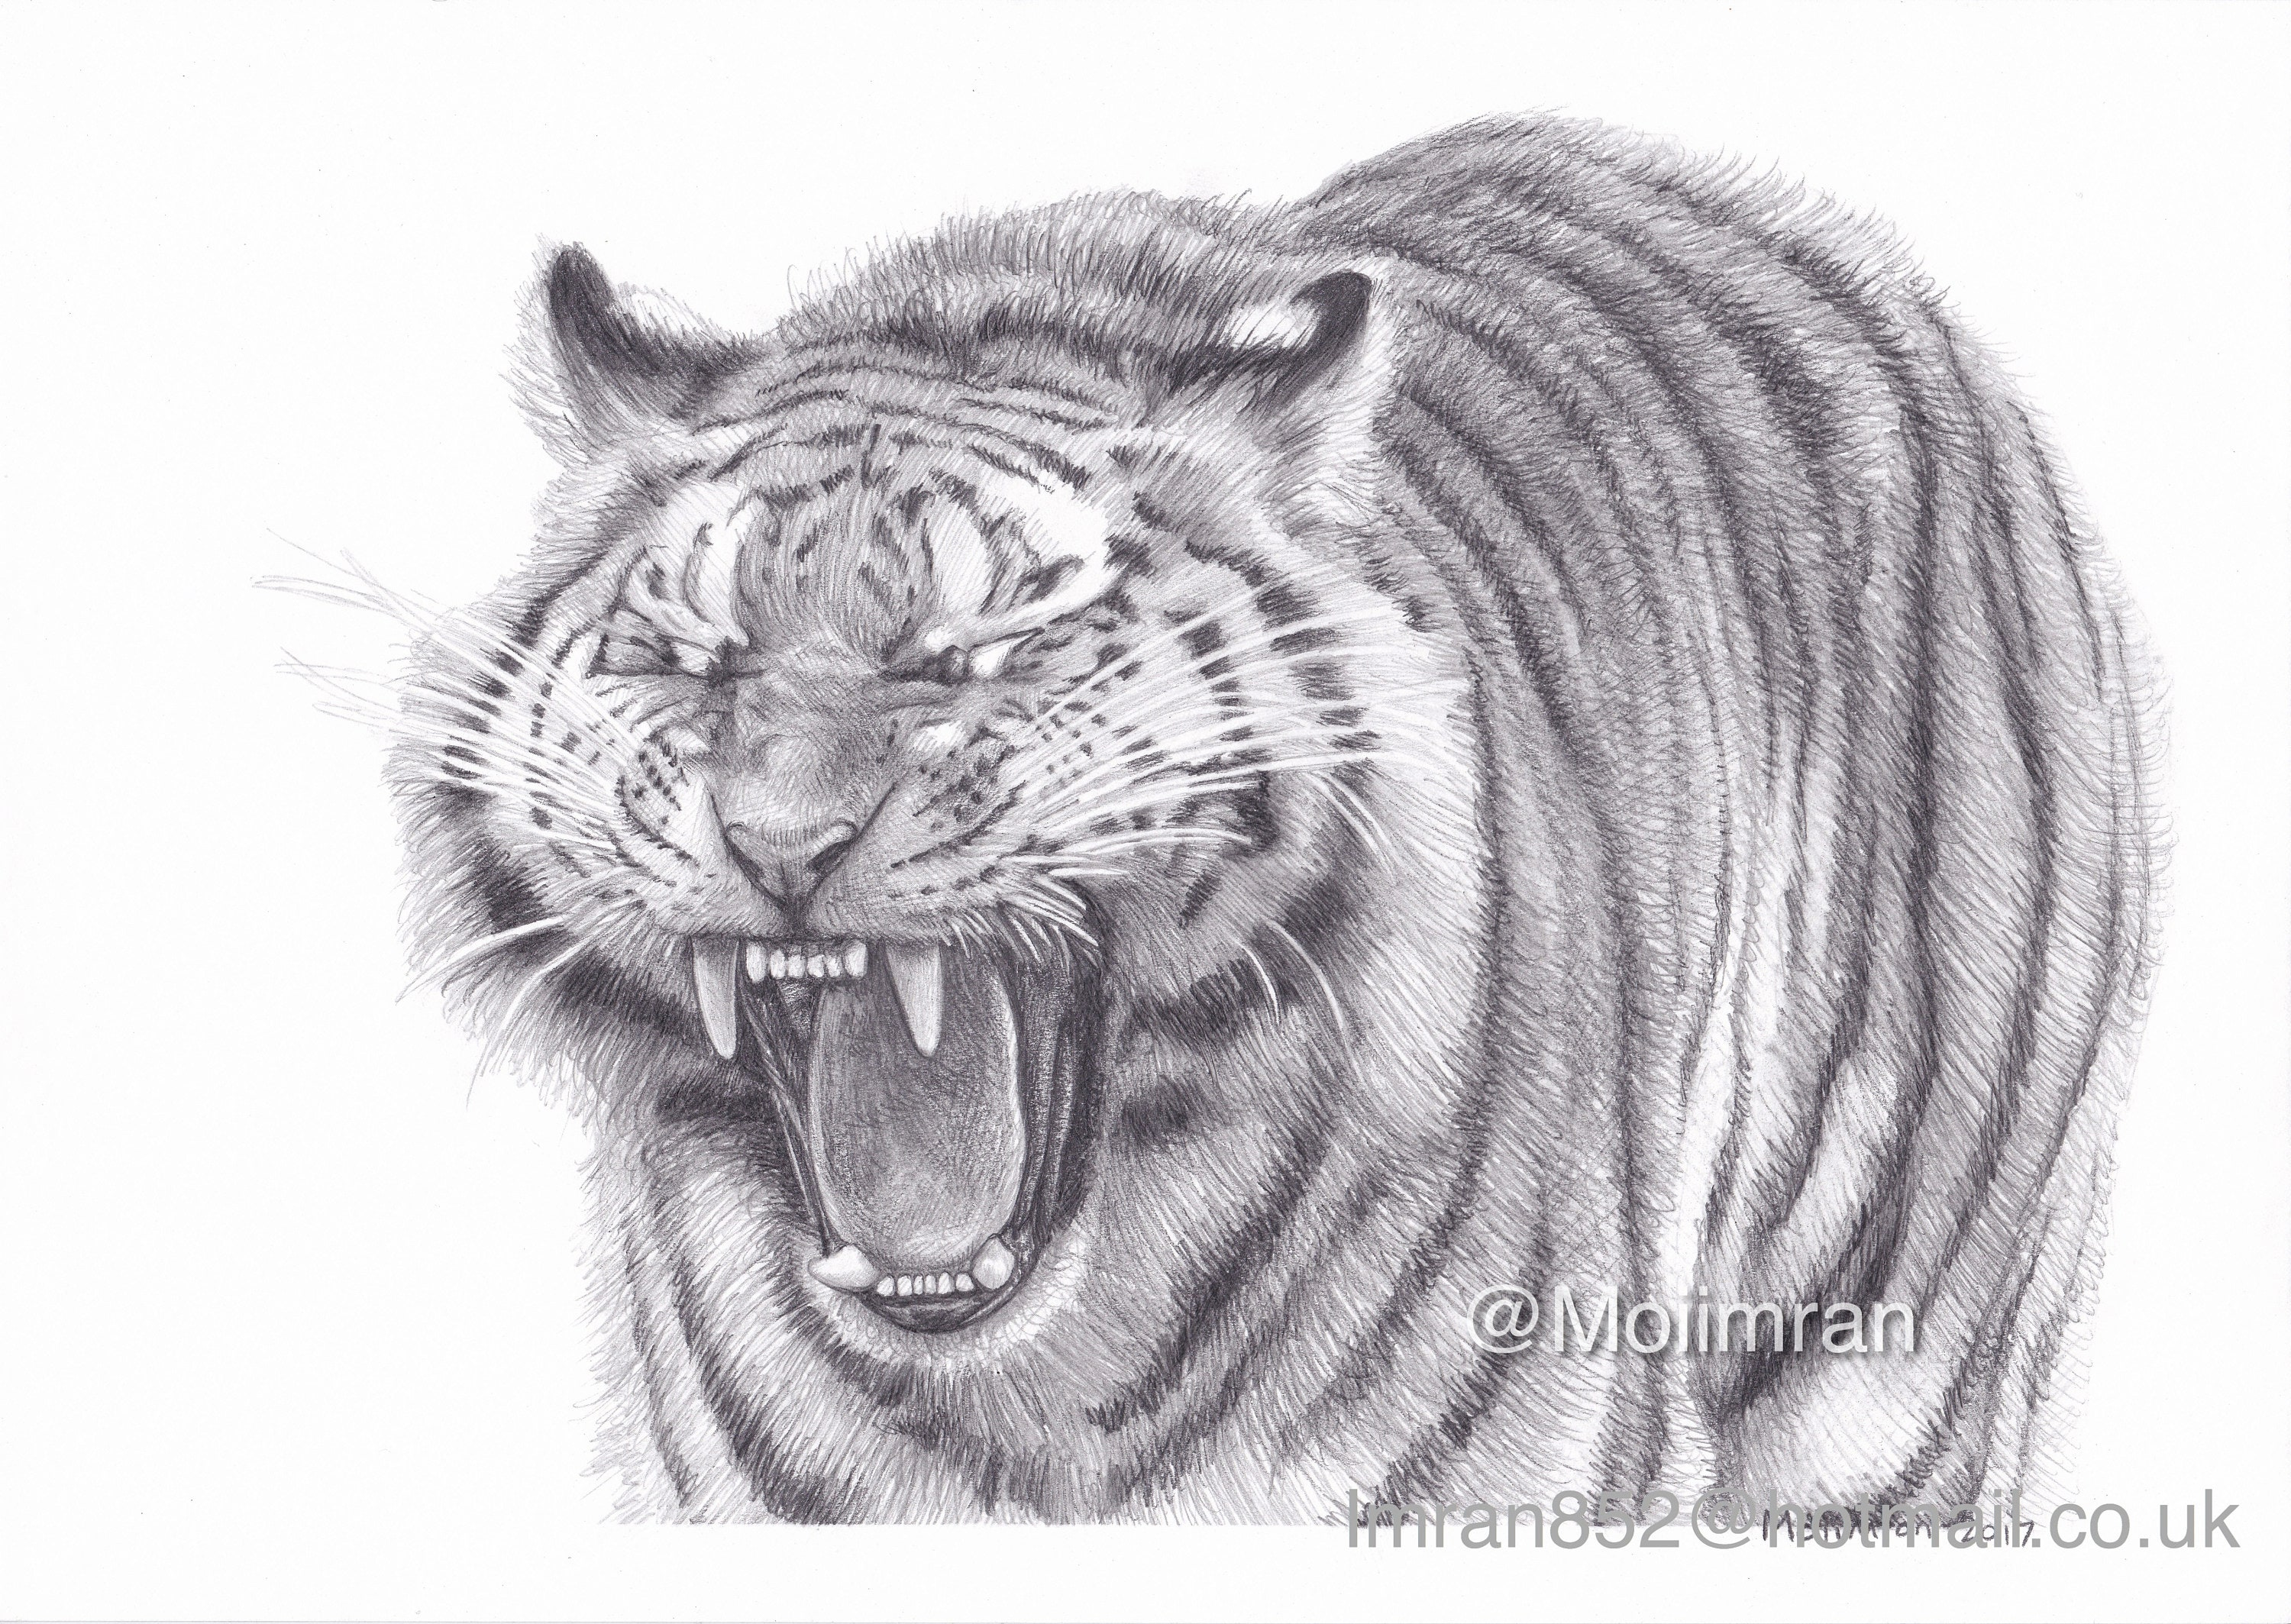 It is a picture of Ambitious Roaring Tiger Drawing